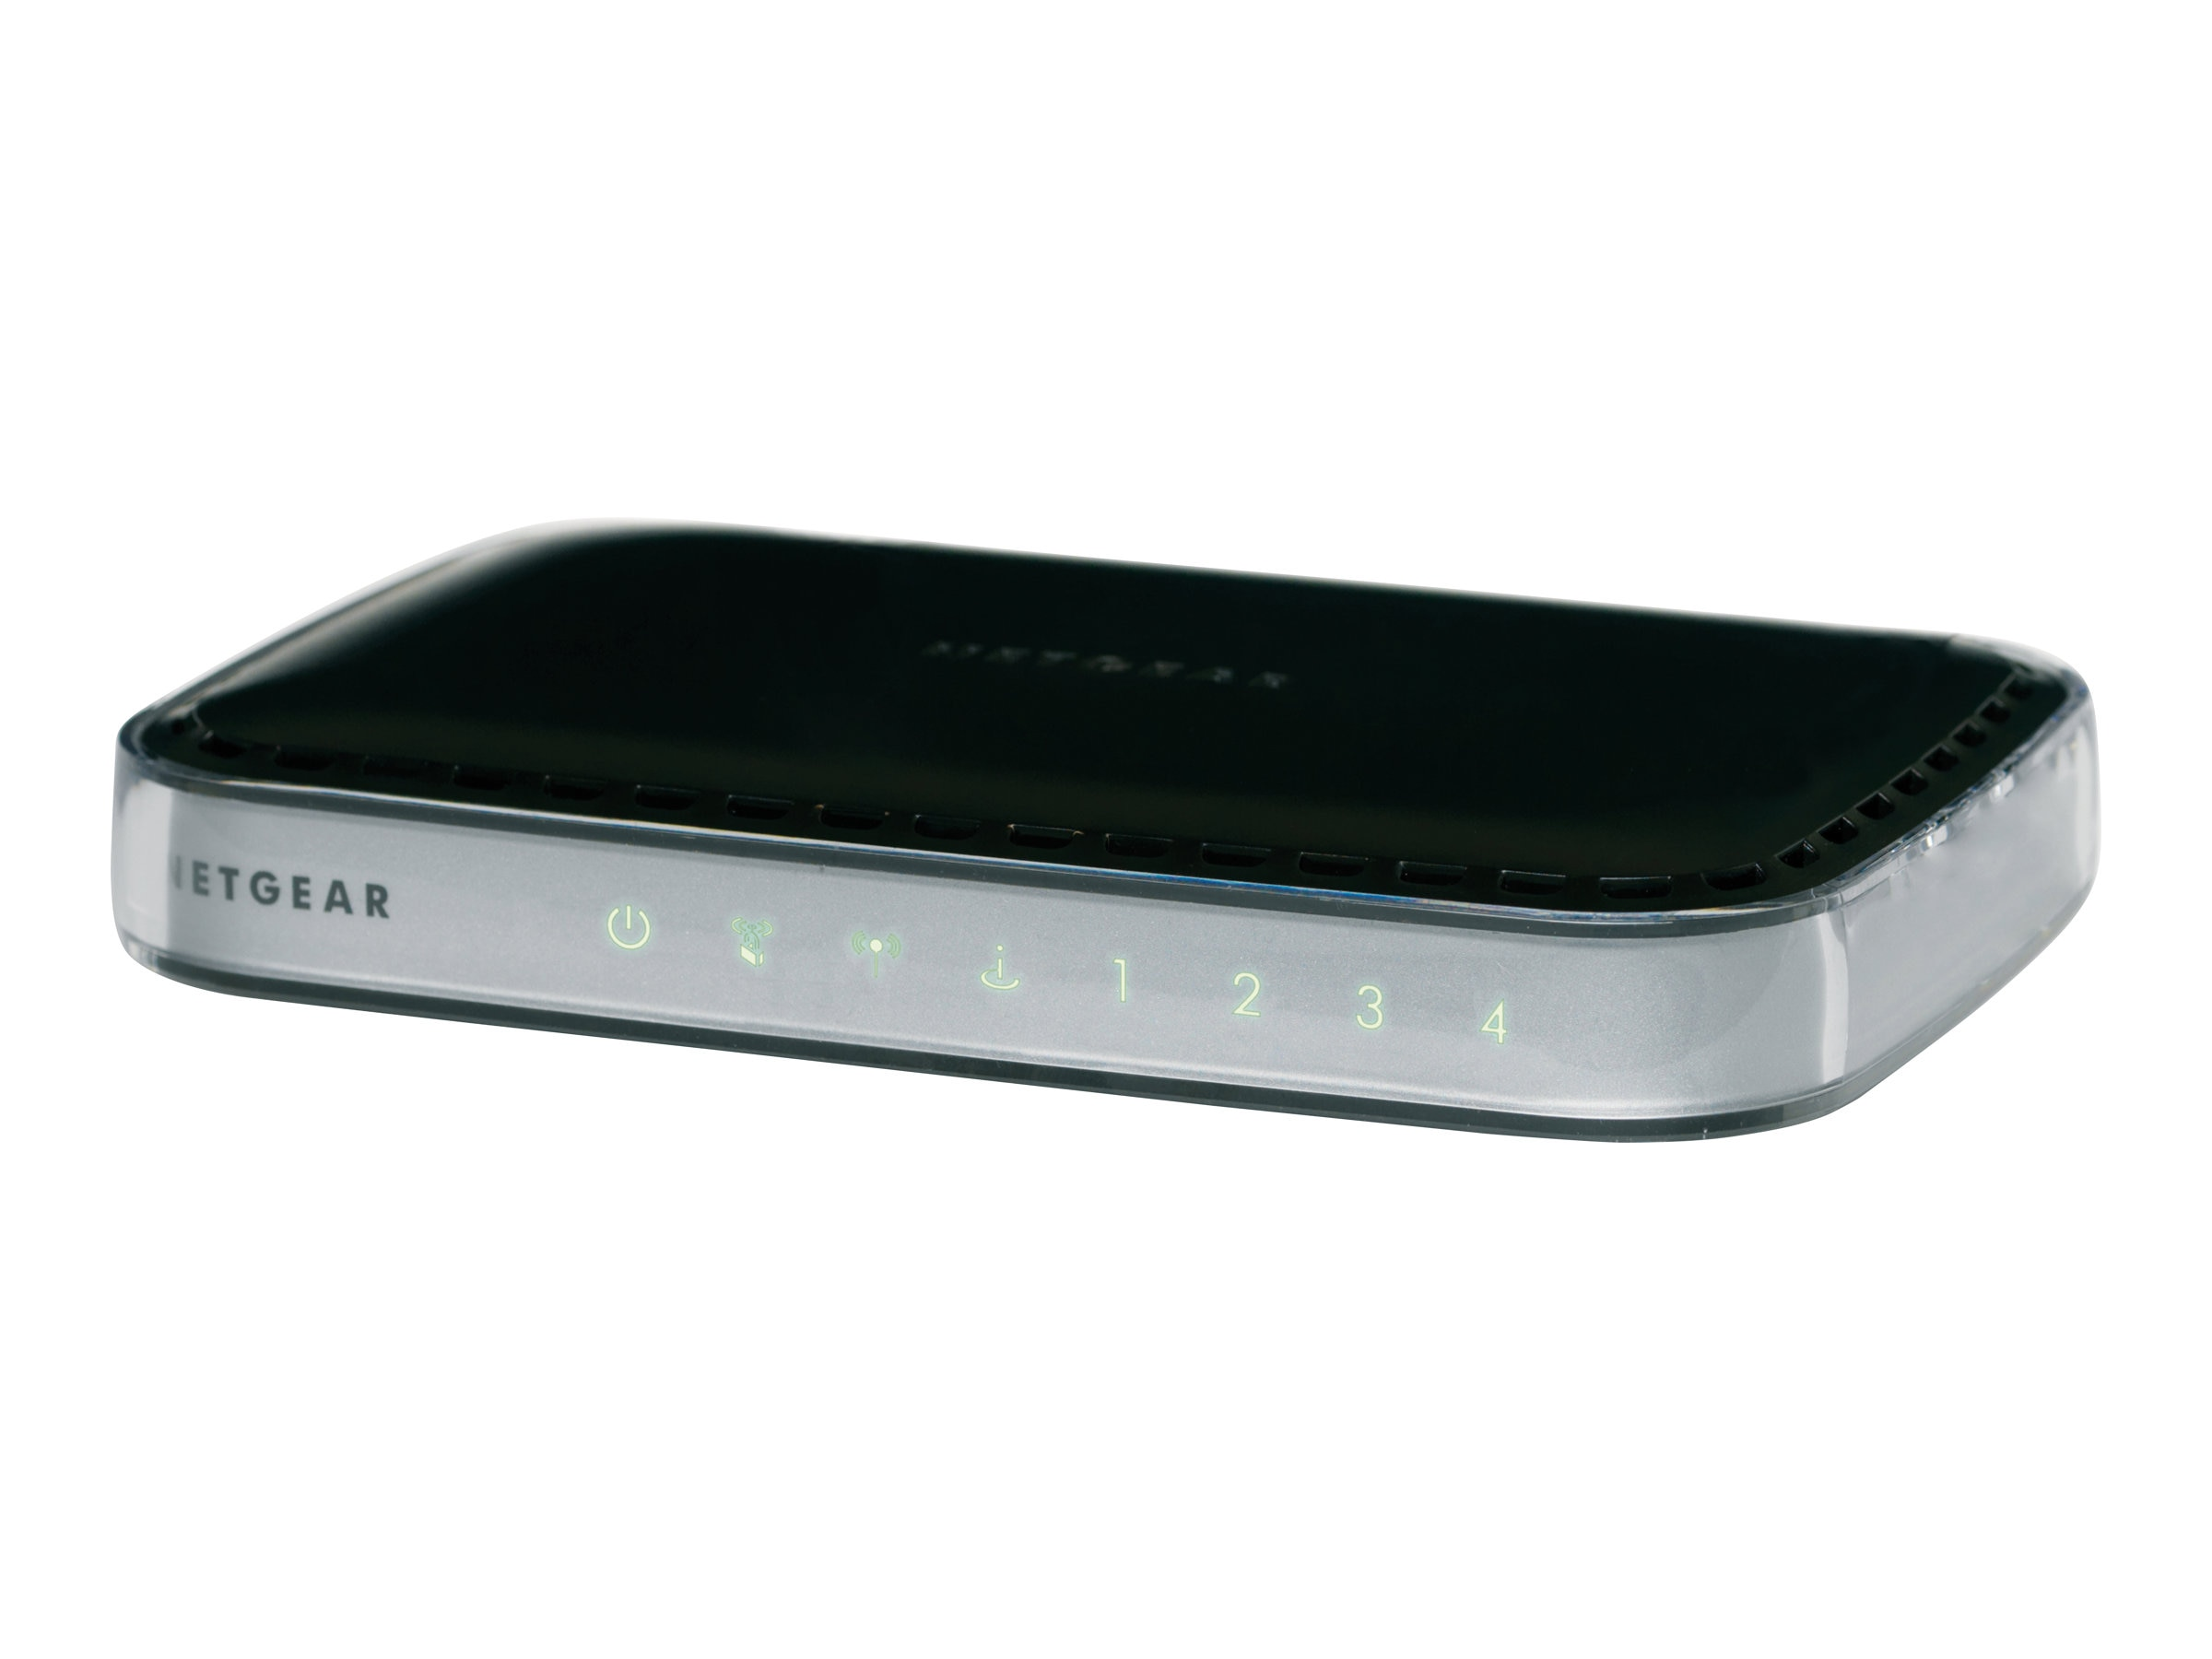 Netgear Rangemax 150 Wireless Router, WNR1000-100NAS, 9498247, Wireless Routers